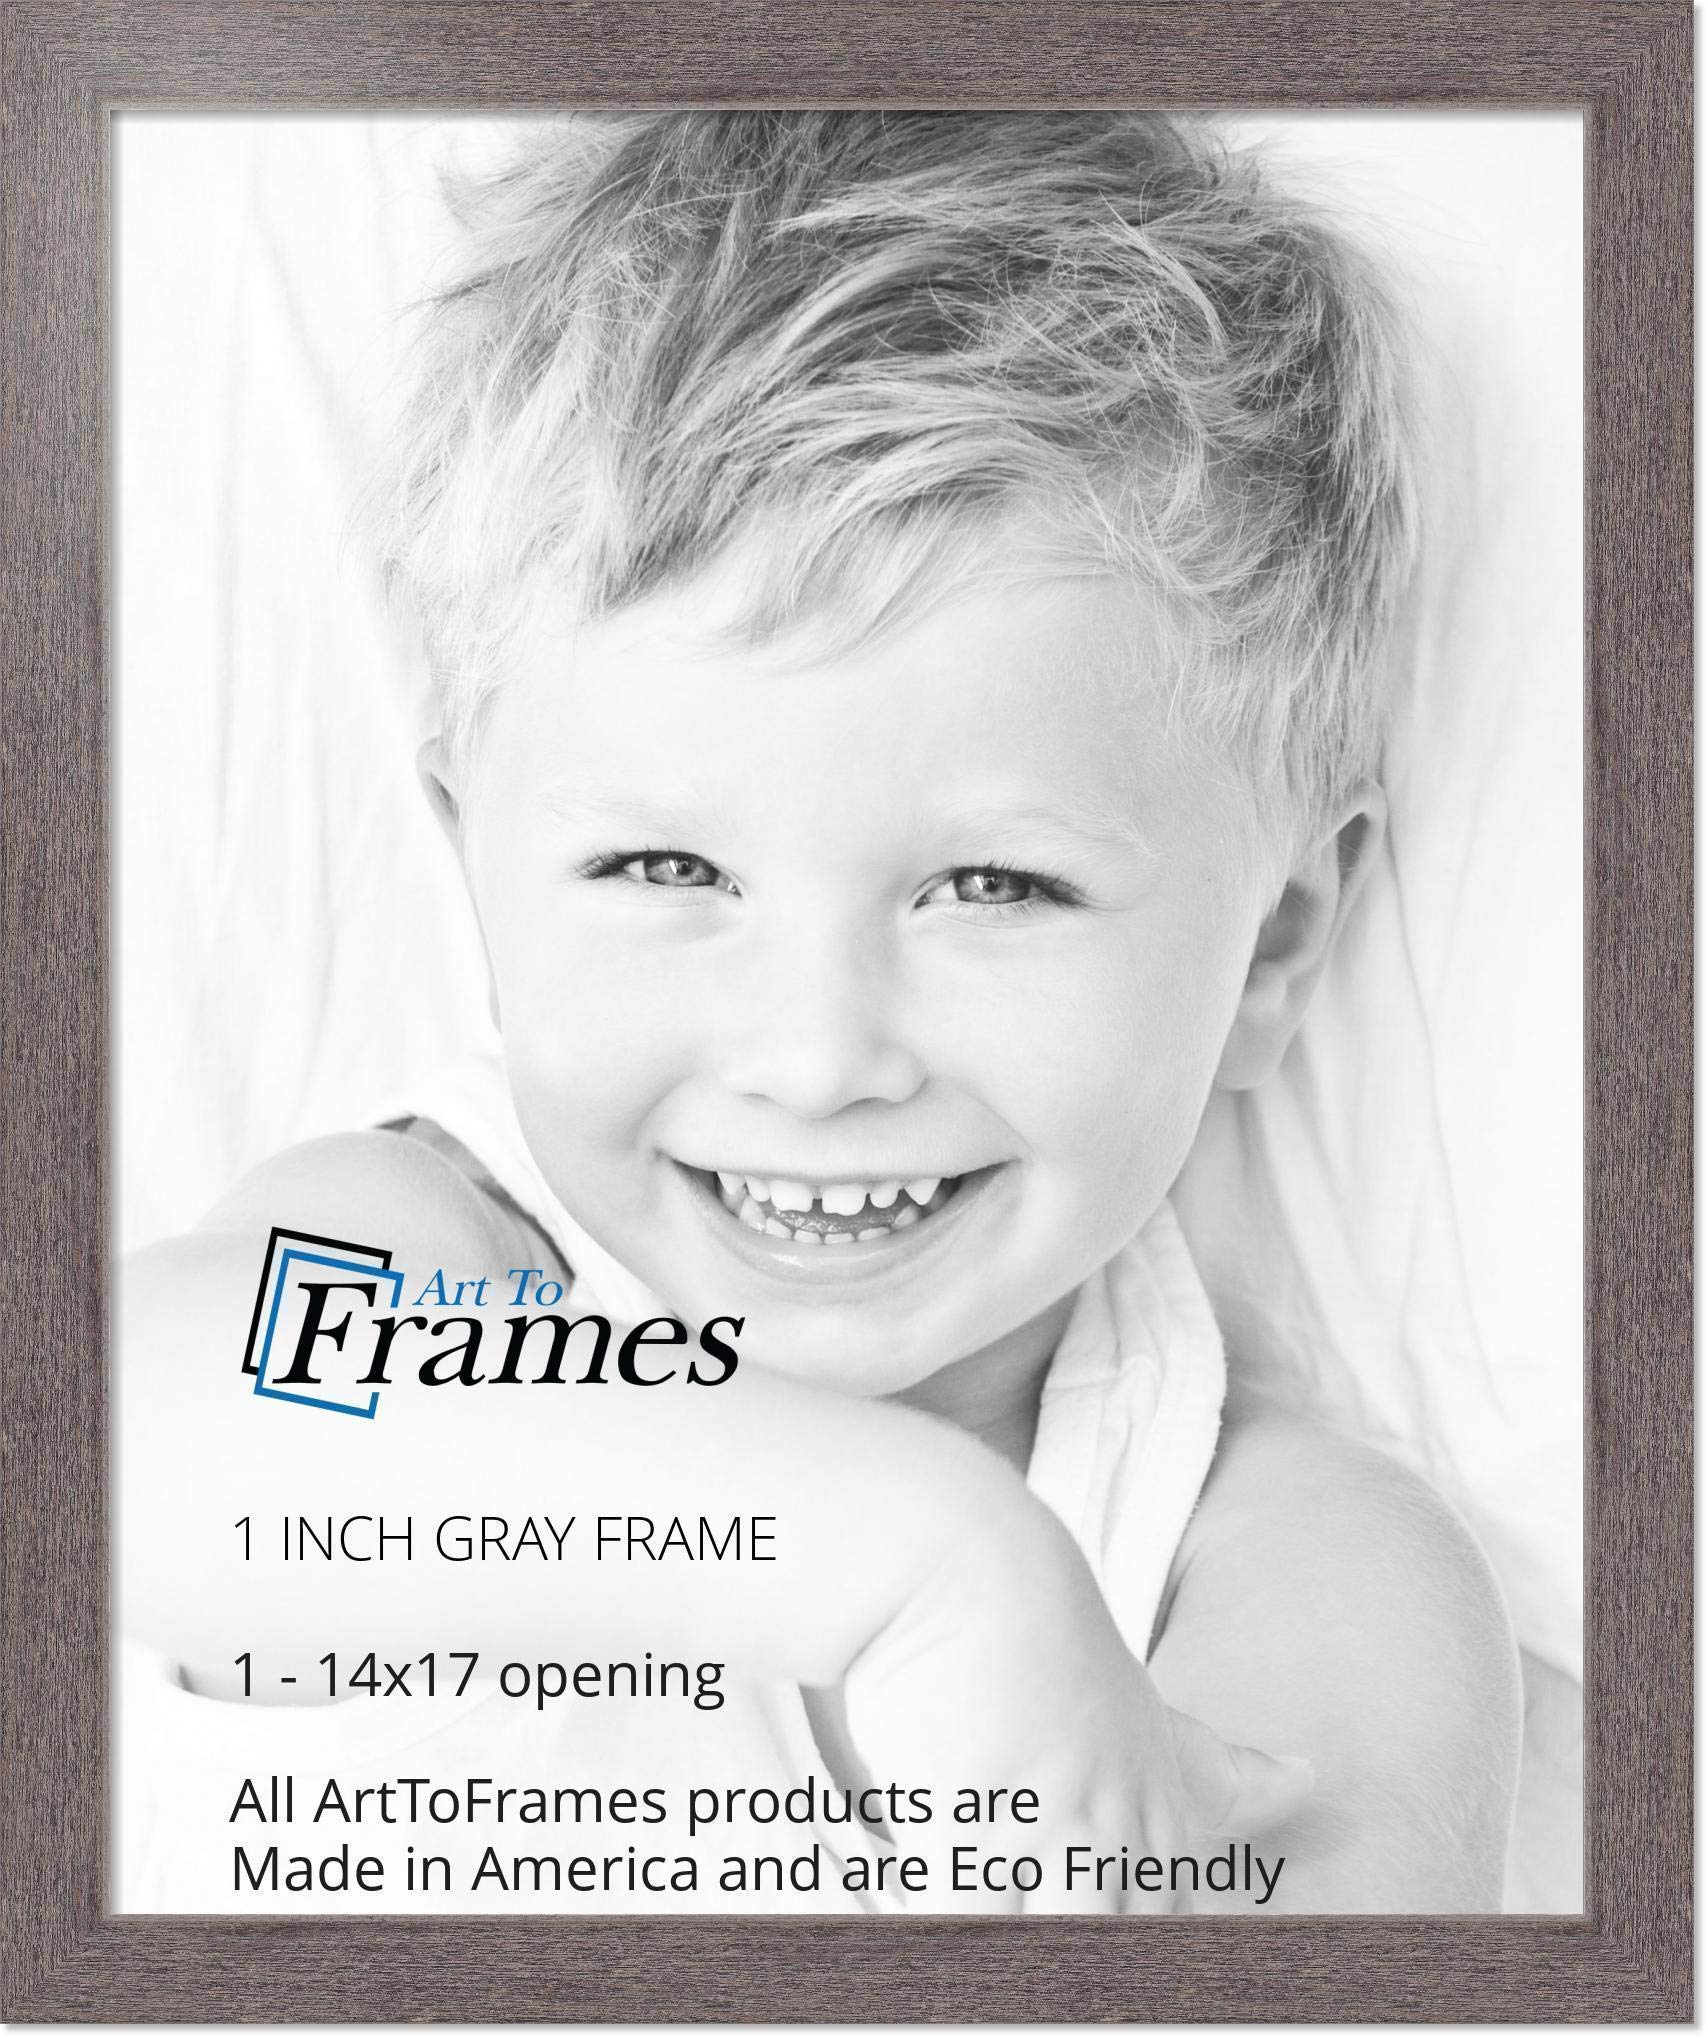 ArtToFrames 14x17 inch Gray Rustic Barnwood Wood Picture Frame, 2WOM0066-77900-YGRY-14x17, 14 x 17'', by ArtToFrames (Image #3)